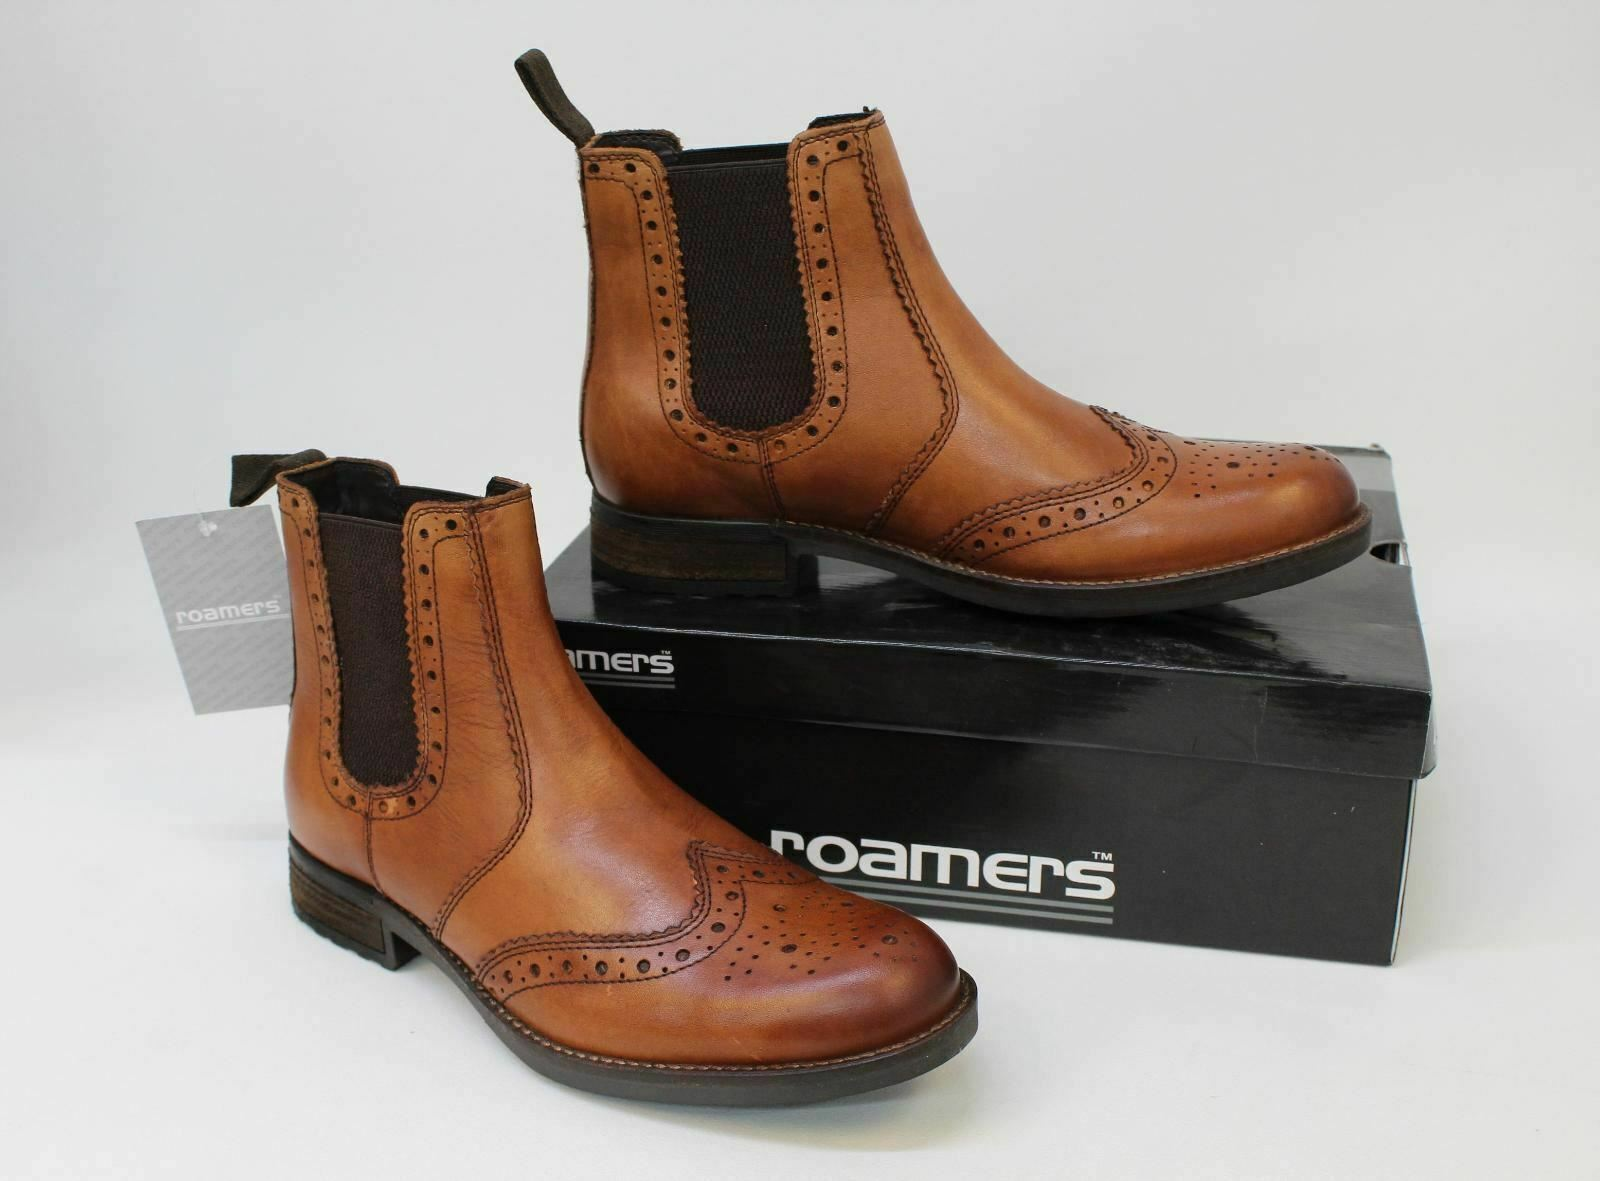 ROAMERS Men's Tan Leather Twin Gusset Brogue Ankle Boots UK9 EUR43.5 NEW